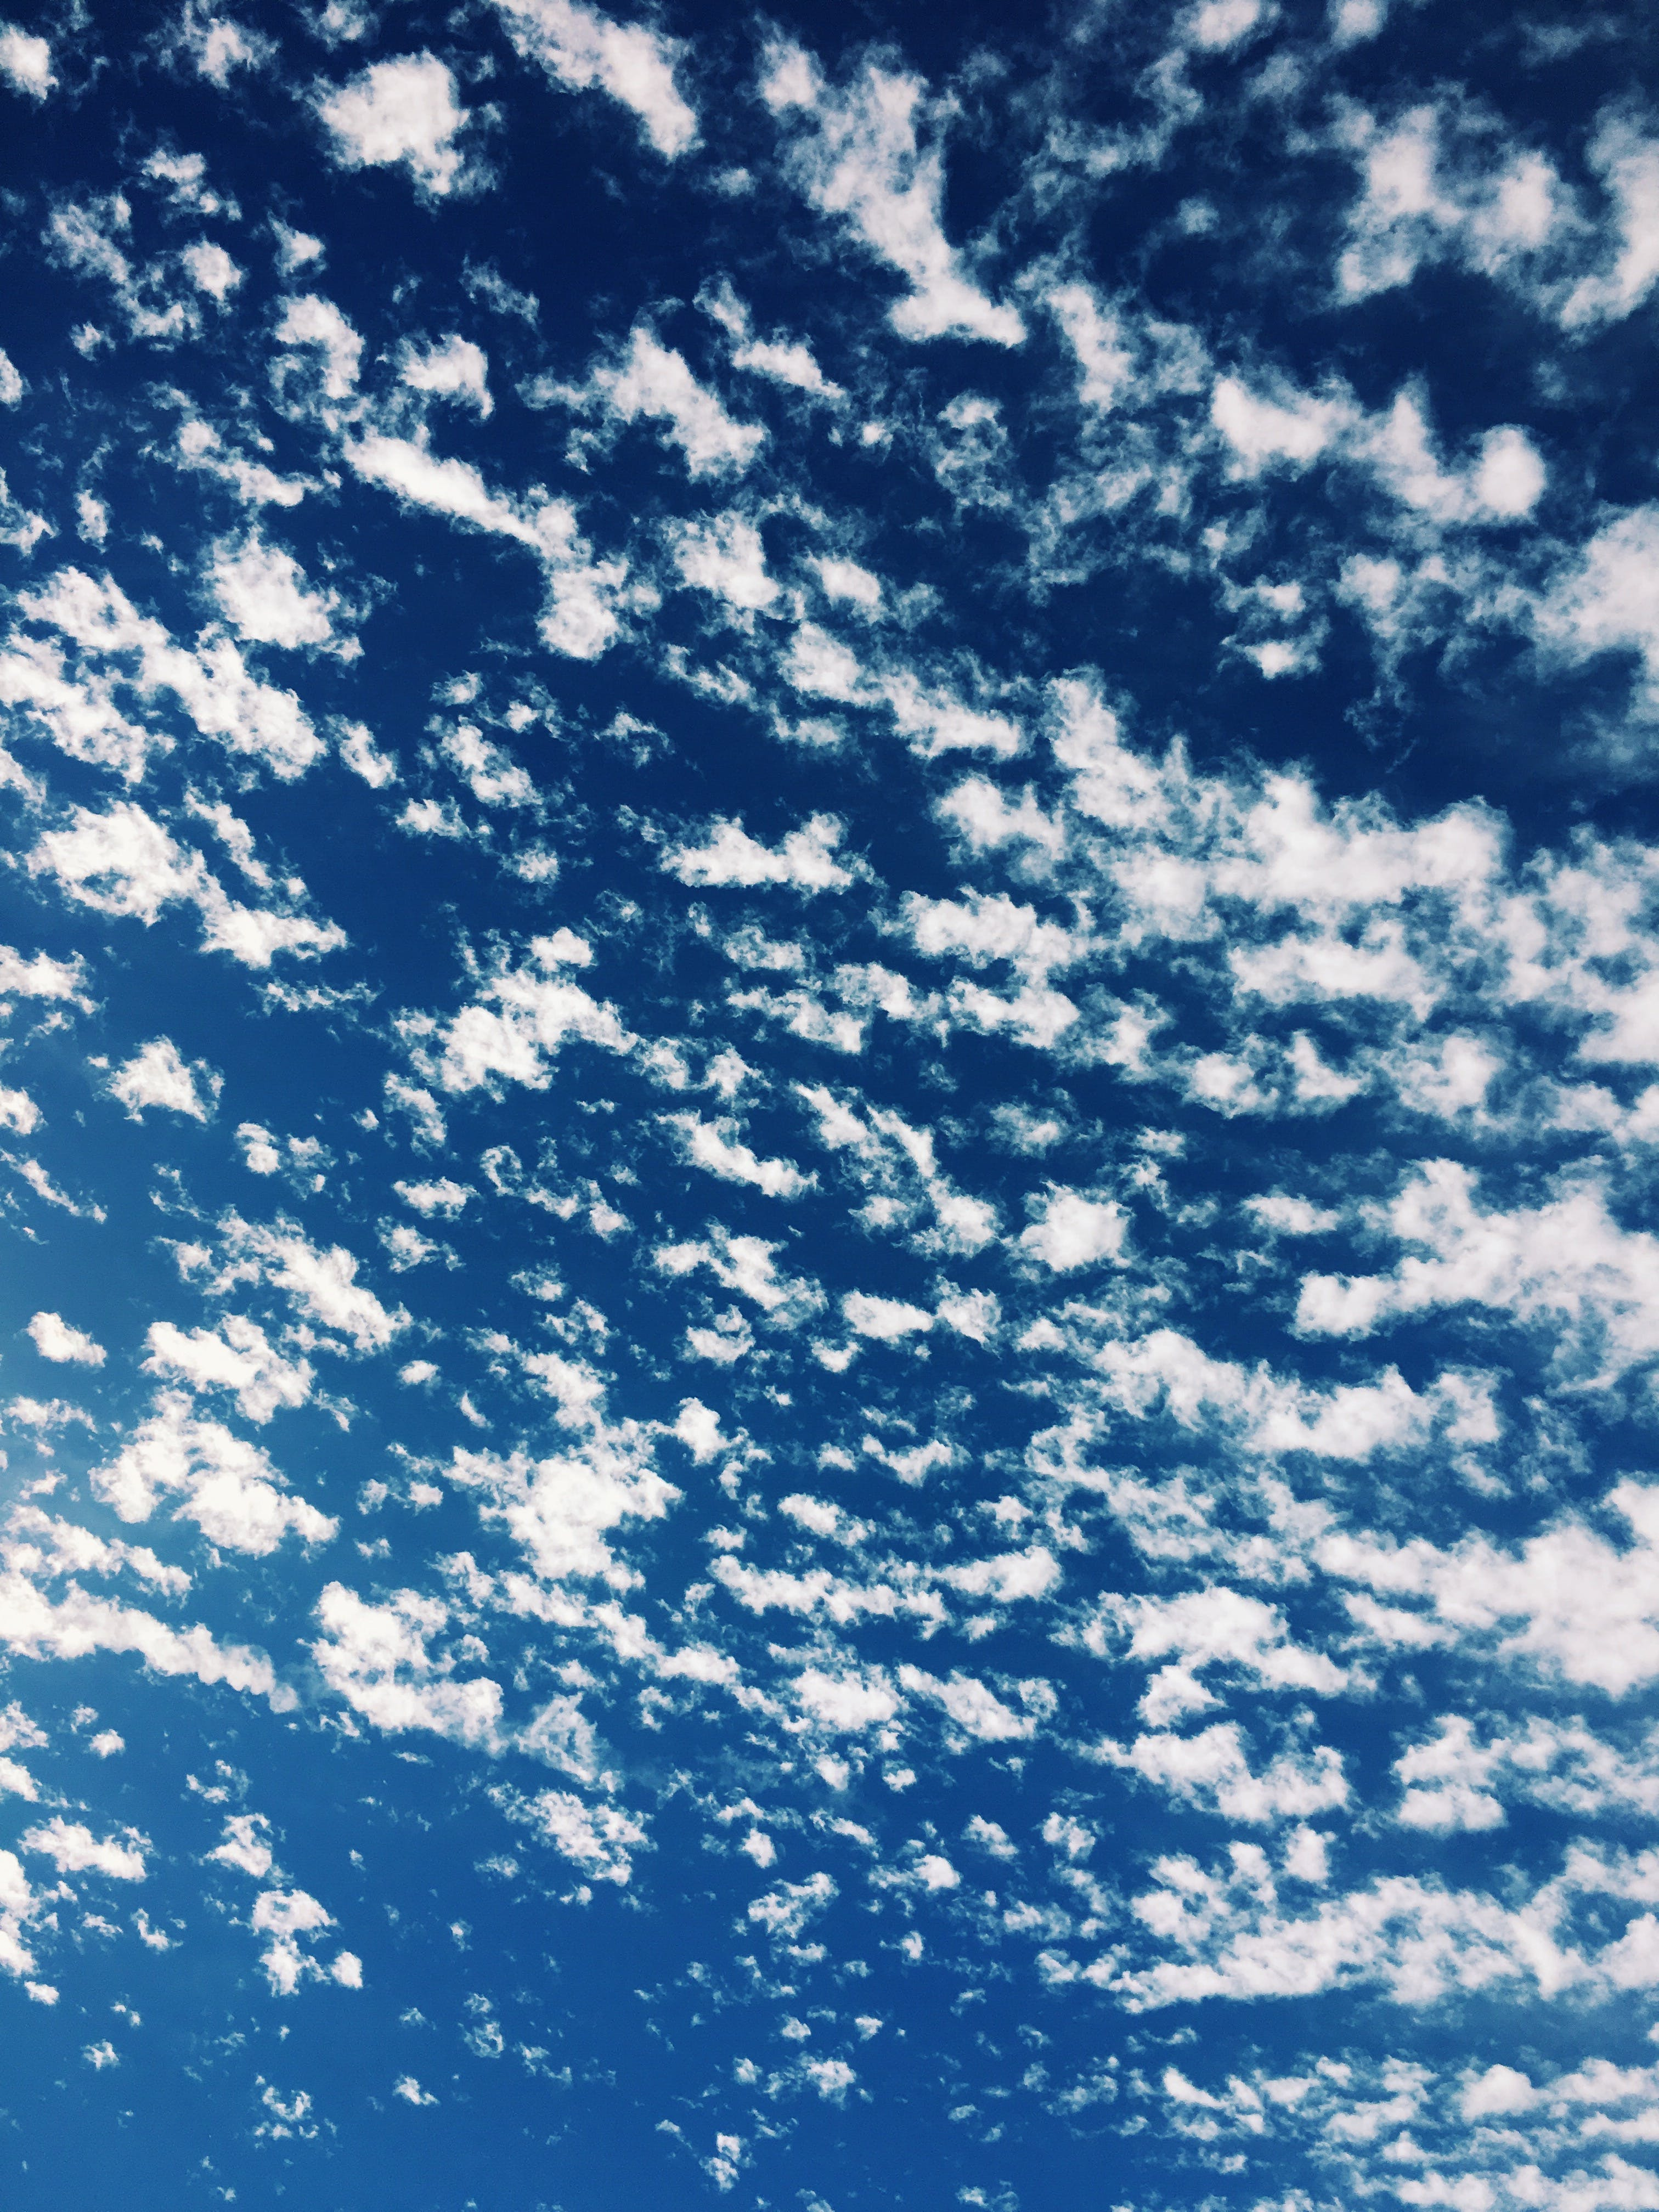 Free stock photo of art, clouds, cloudy, blue